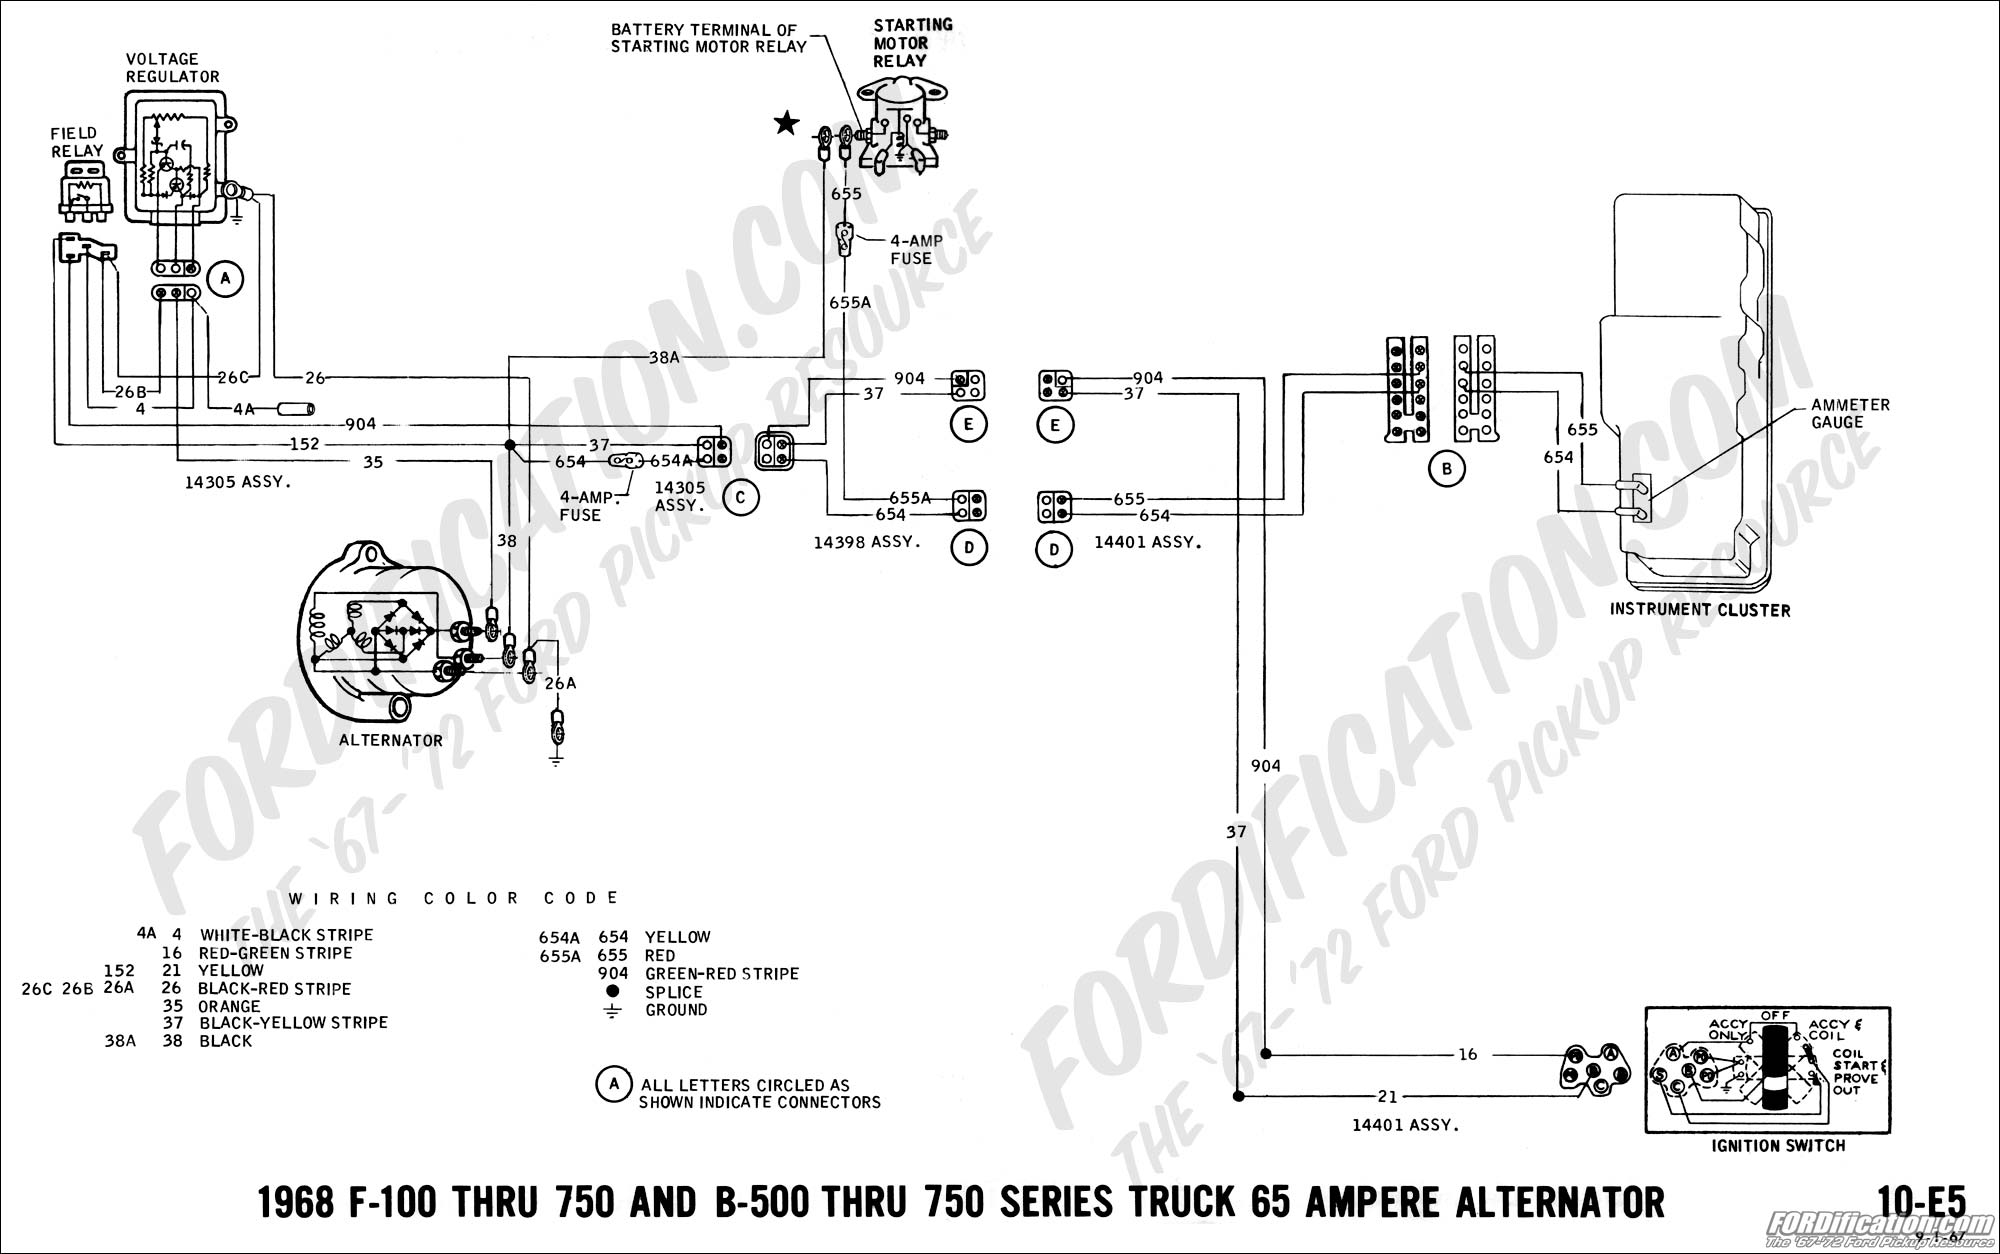 68 07 ford truck technical drawings and schematics section h wiring 1968 mustang ignition wiring diagram at bakdesigns.co